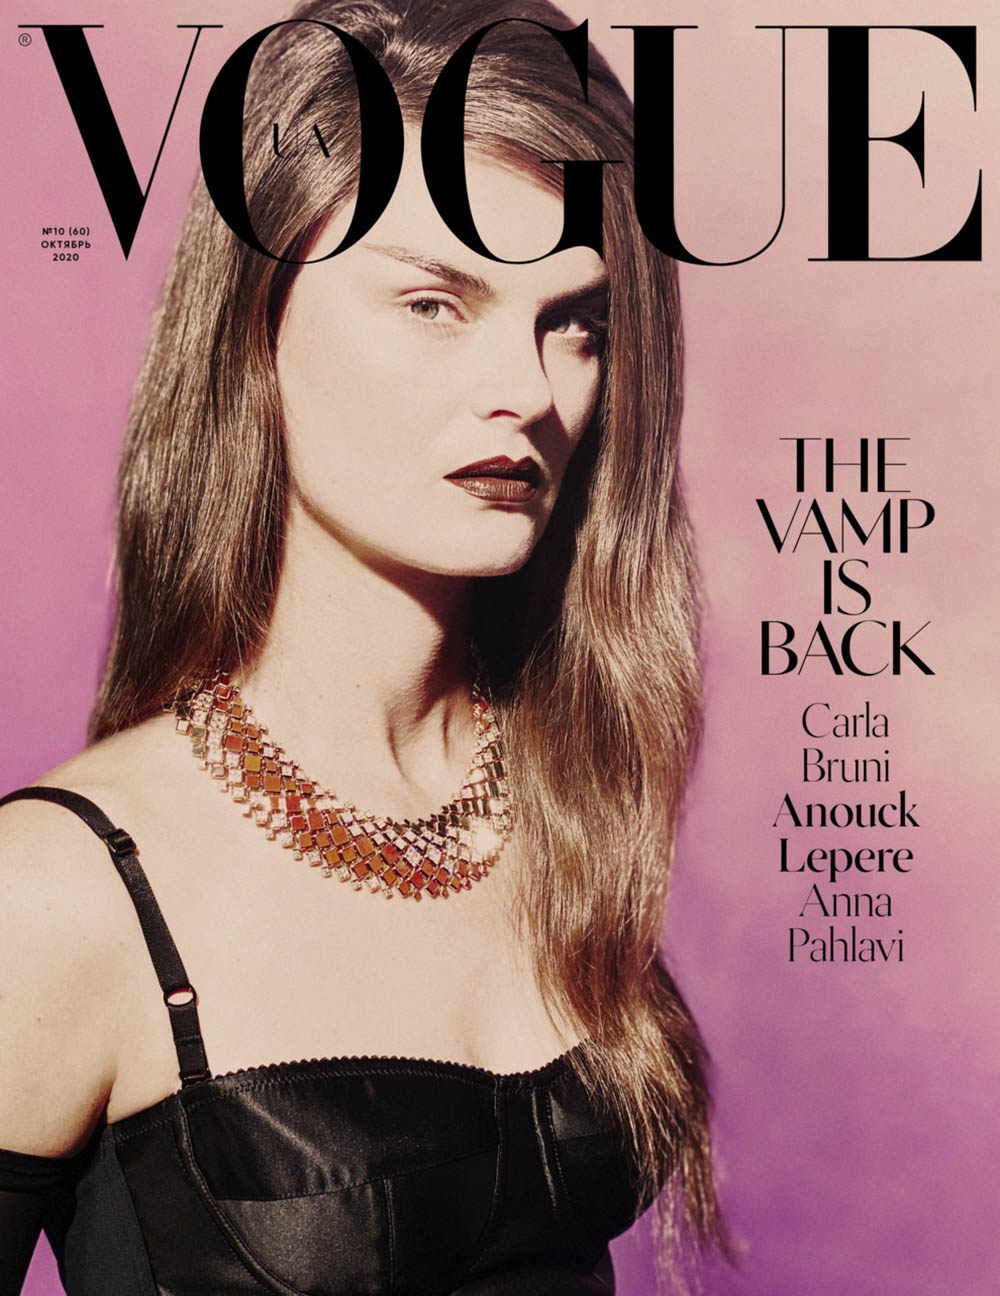 Anouck Lepère covers Vogue Ukraine October 2020 by Paul Kooiker